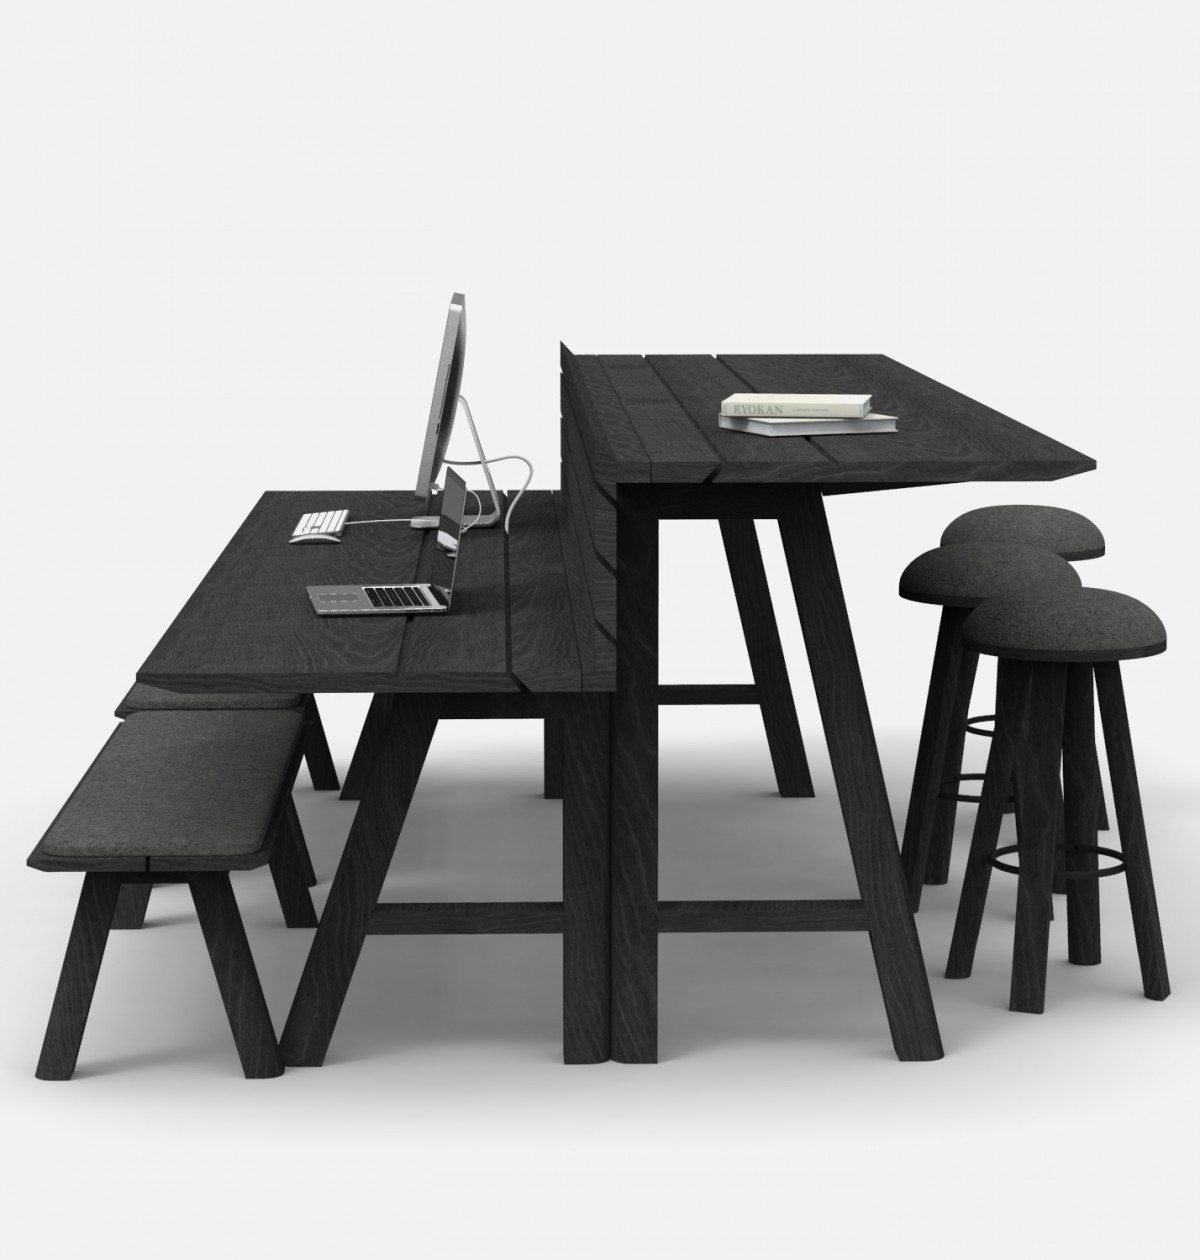 The U201cSplit Levelu201d Version Of The BuzziPicnic Table Enables People To Work On